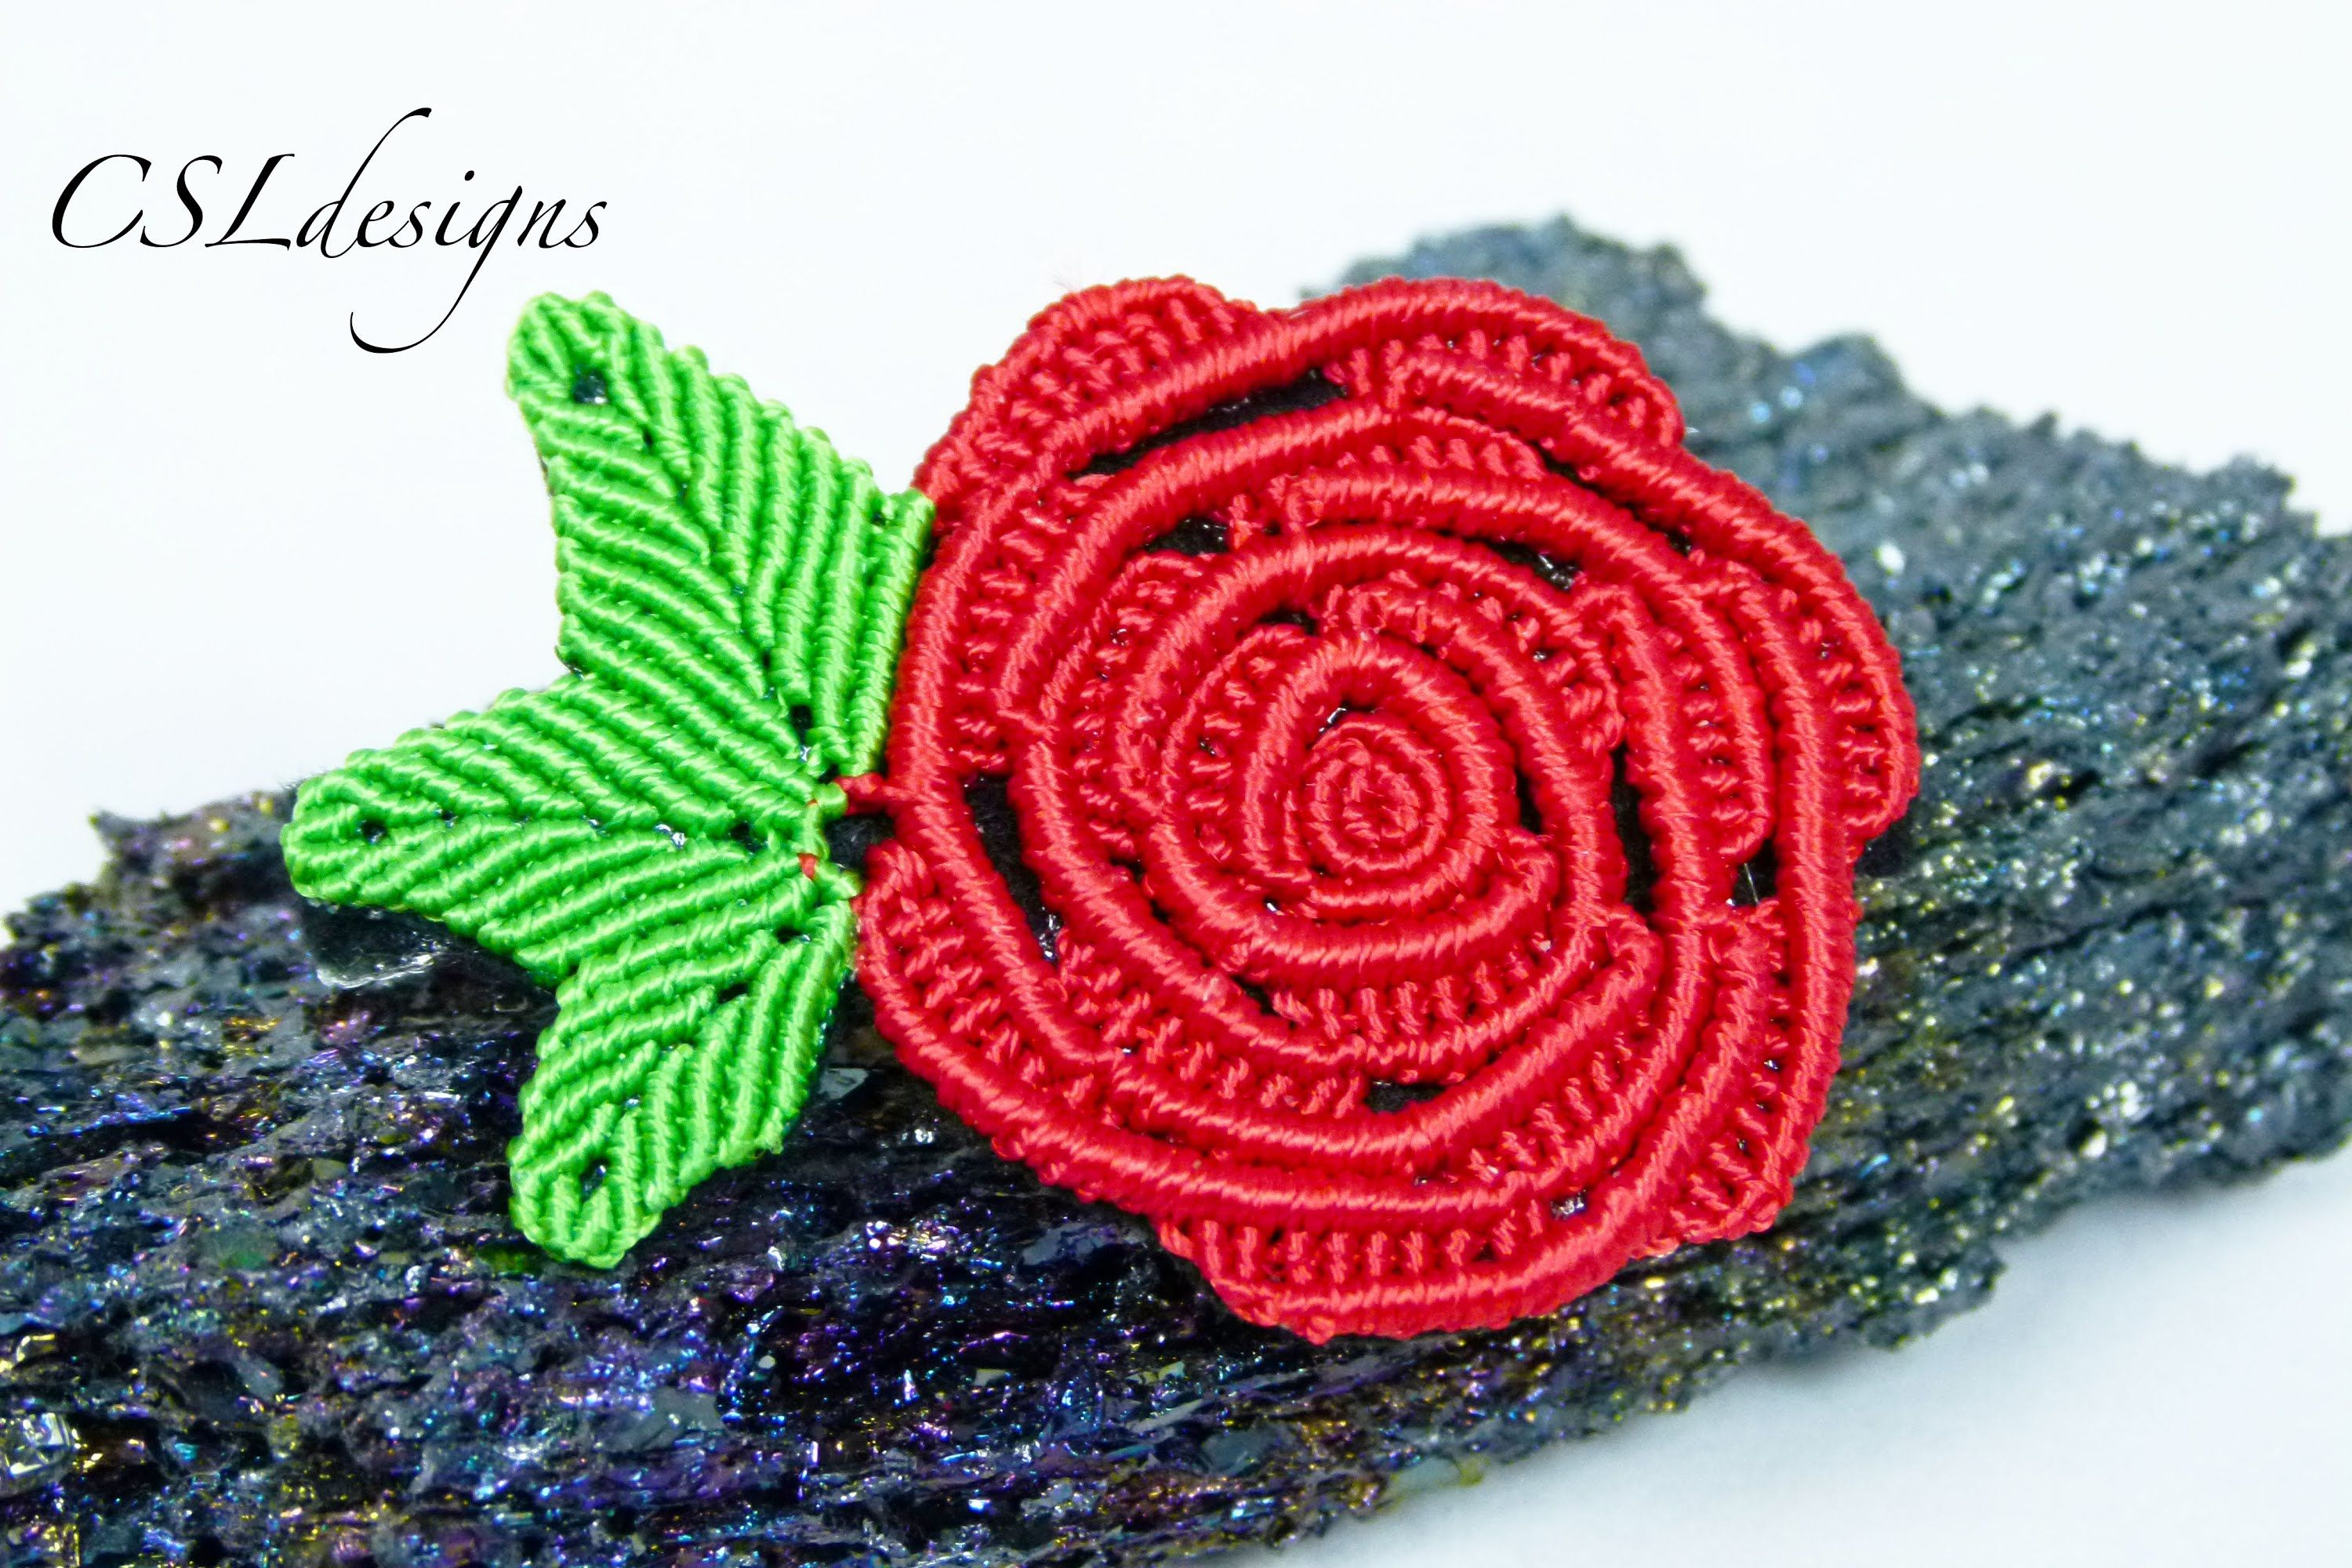 In This Tutorial I Show You How To Make A Micro Macrame Rose That Is